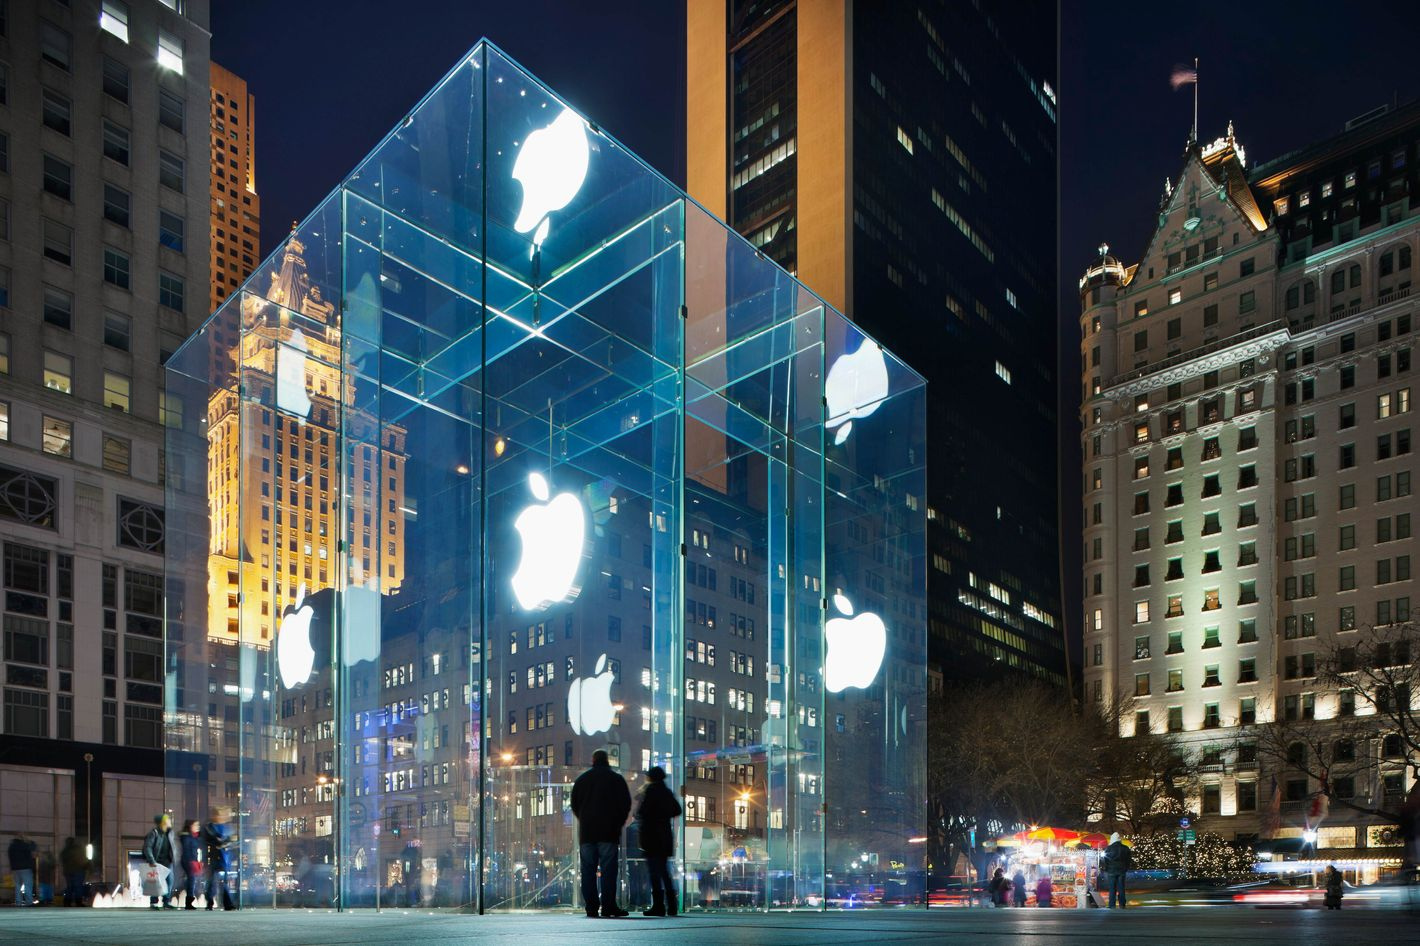 The Untold Story of How the Apple Store Cube Landed in Midtown